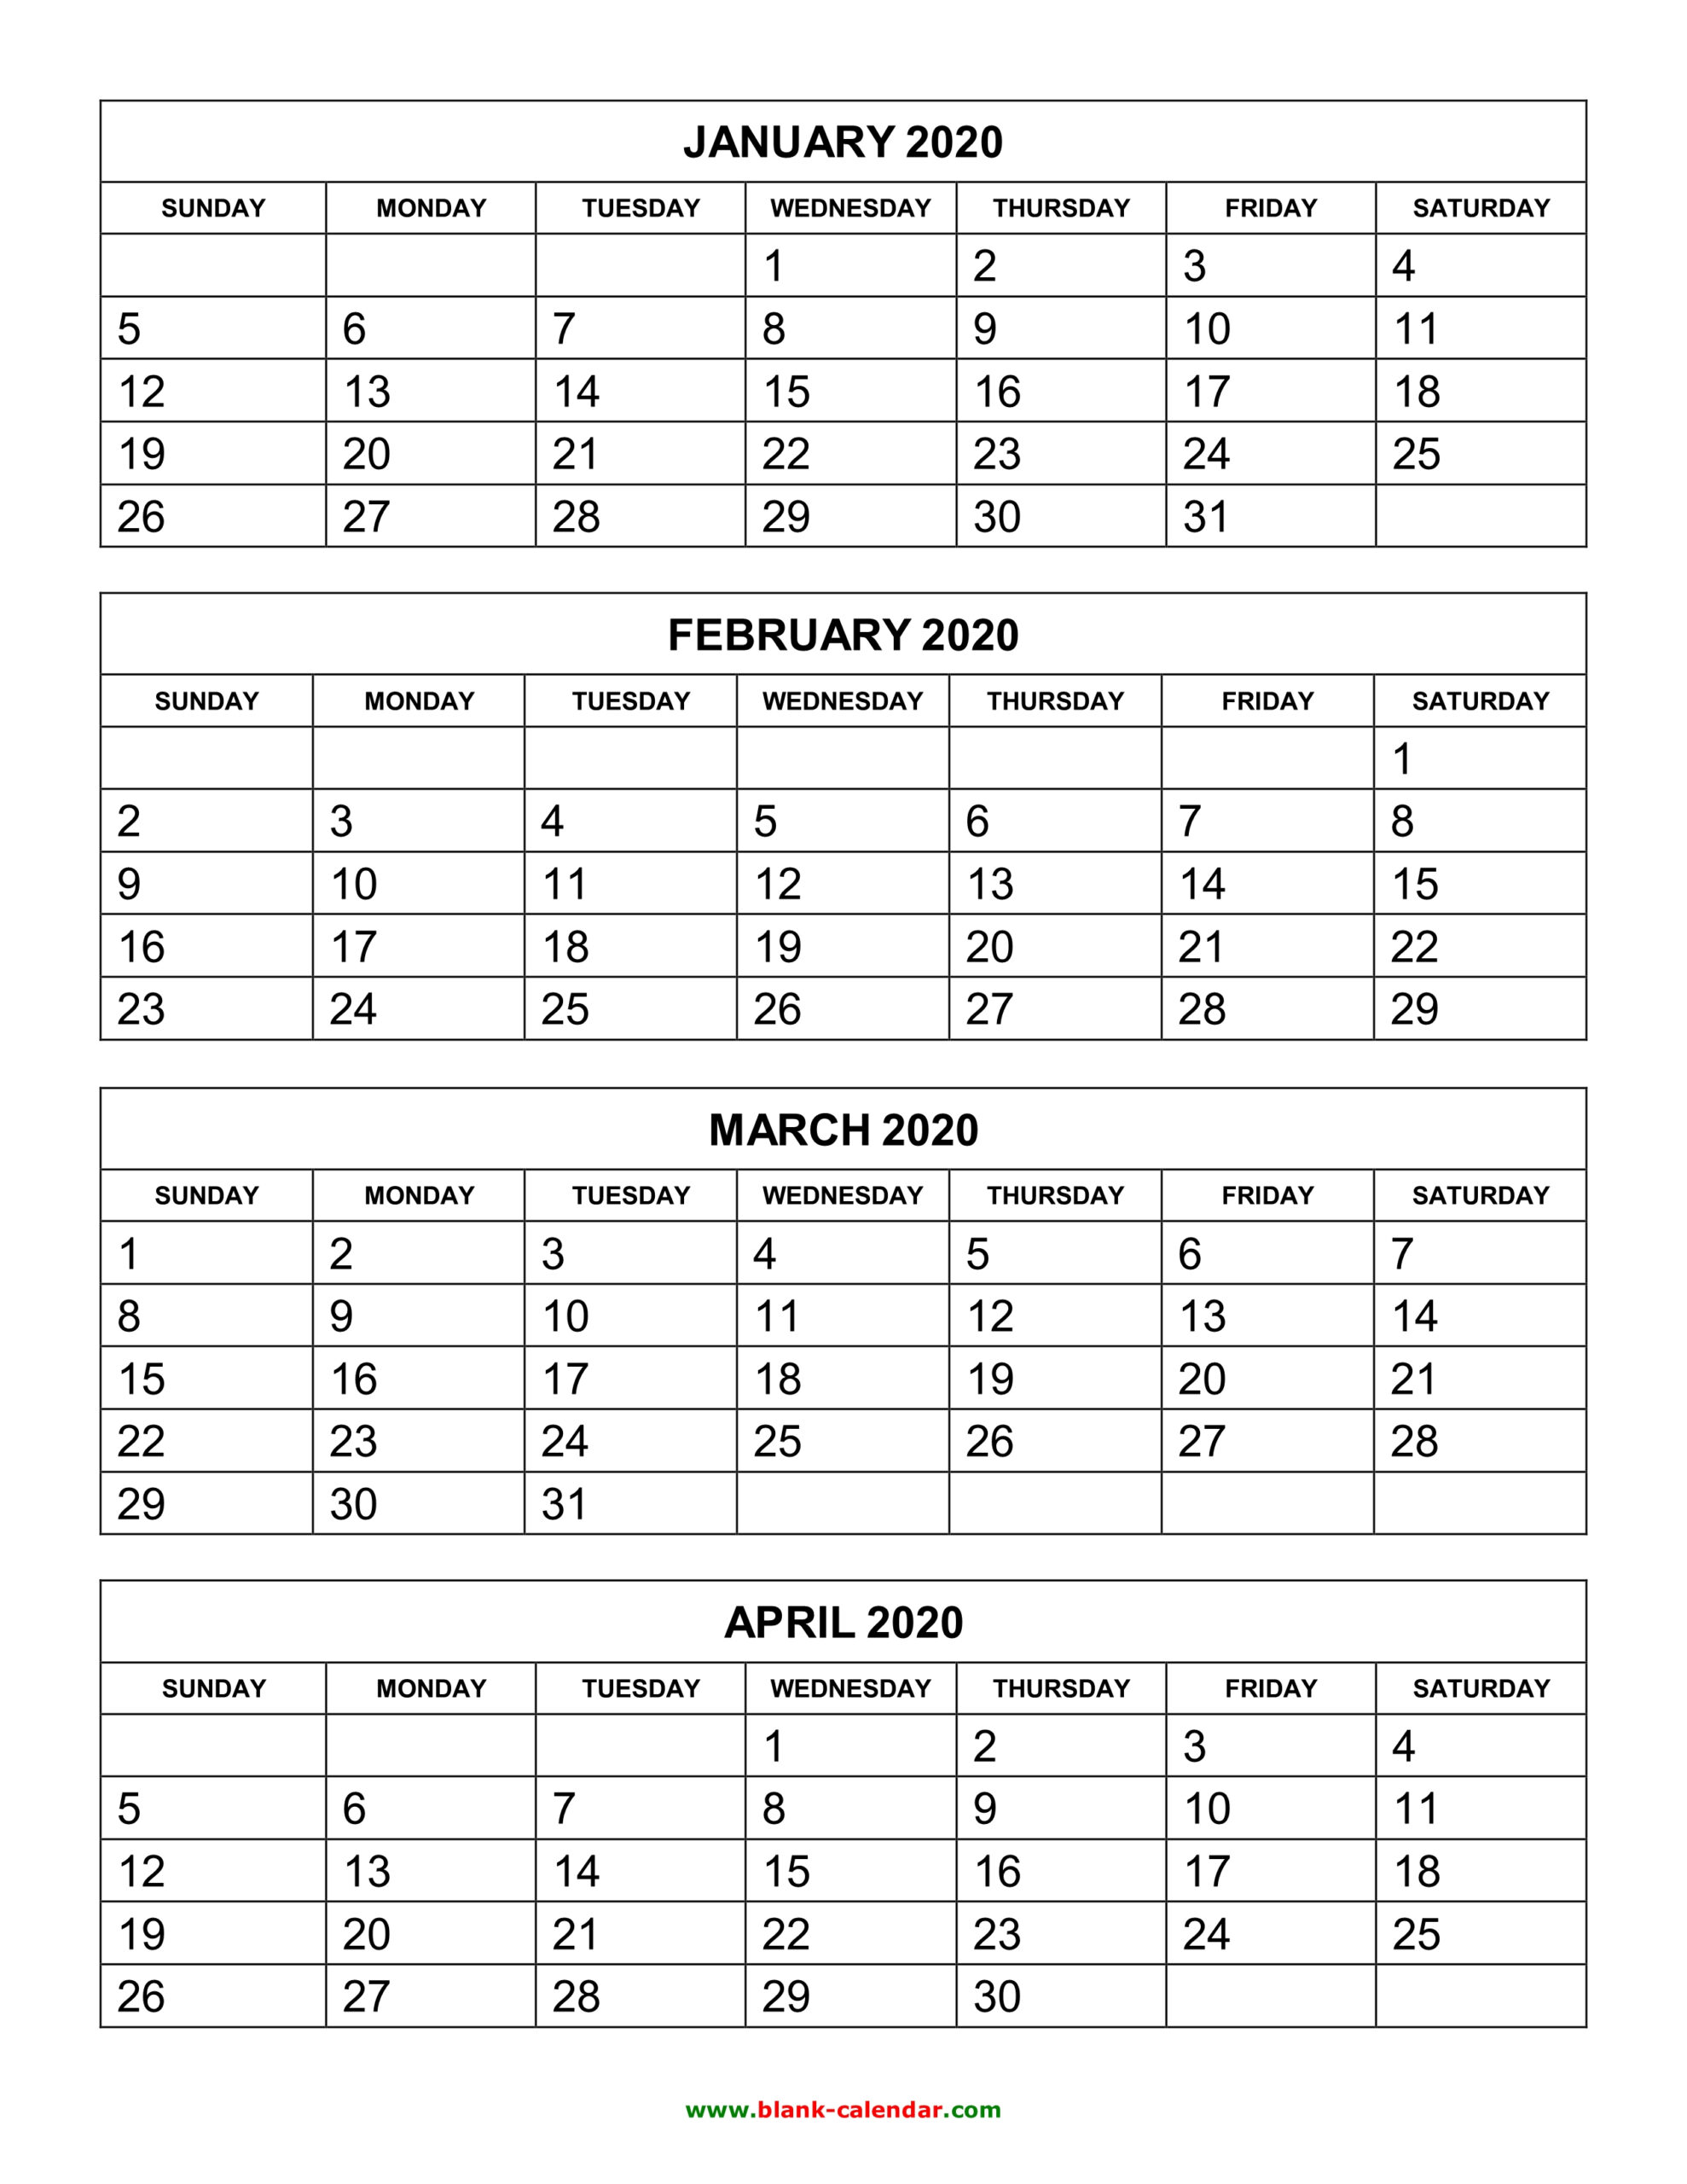 Calendar Templates 3 Months Per Page 2020 | Example